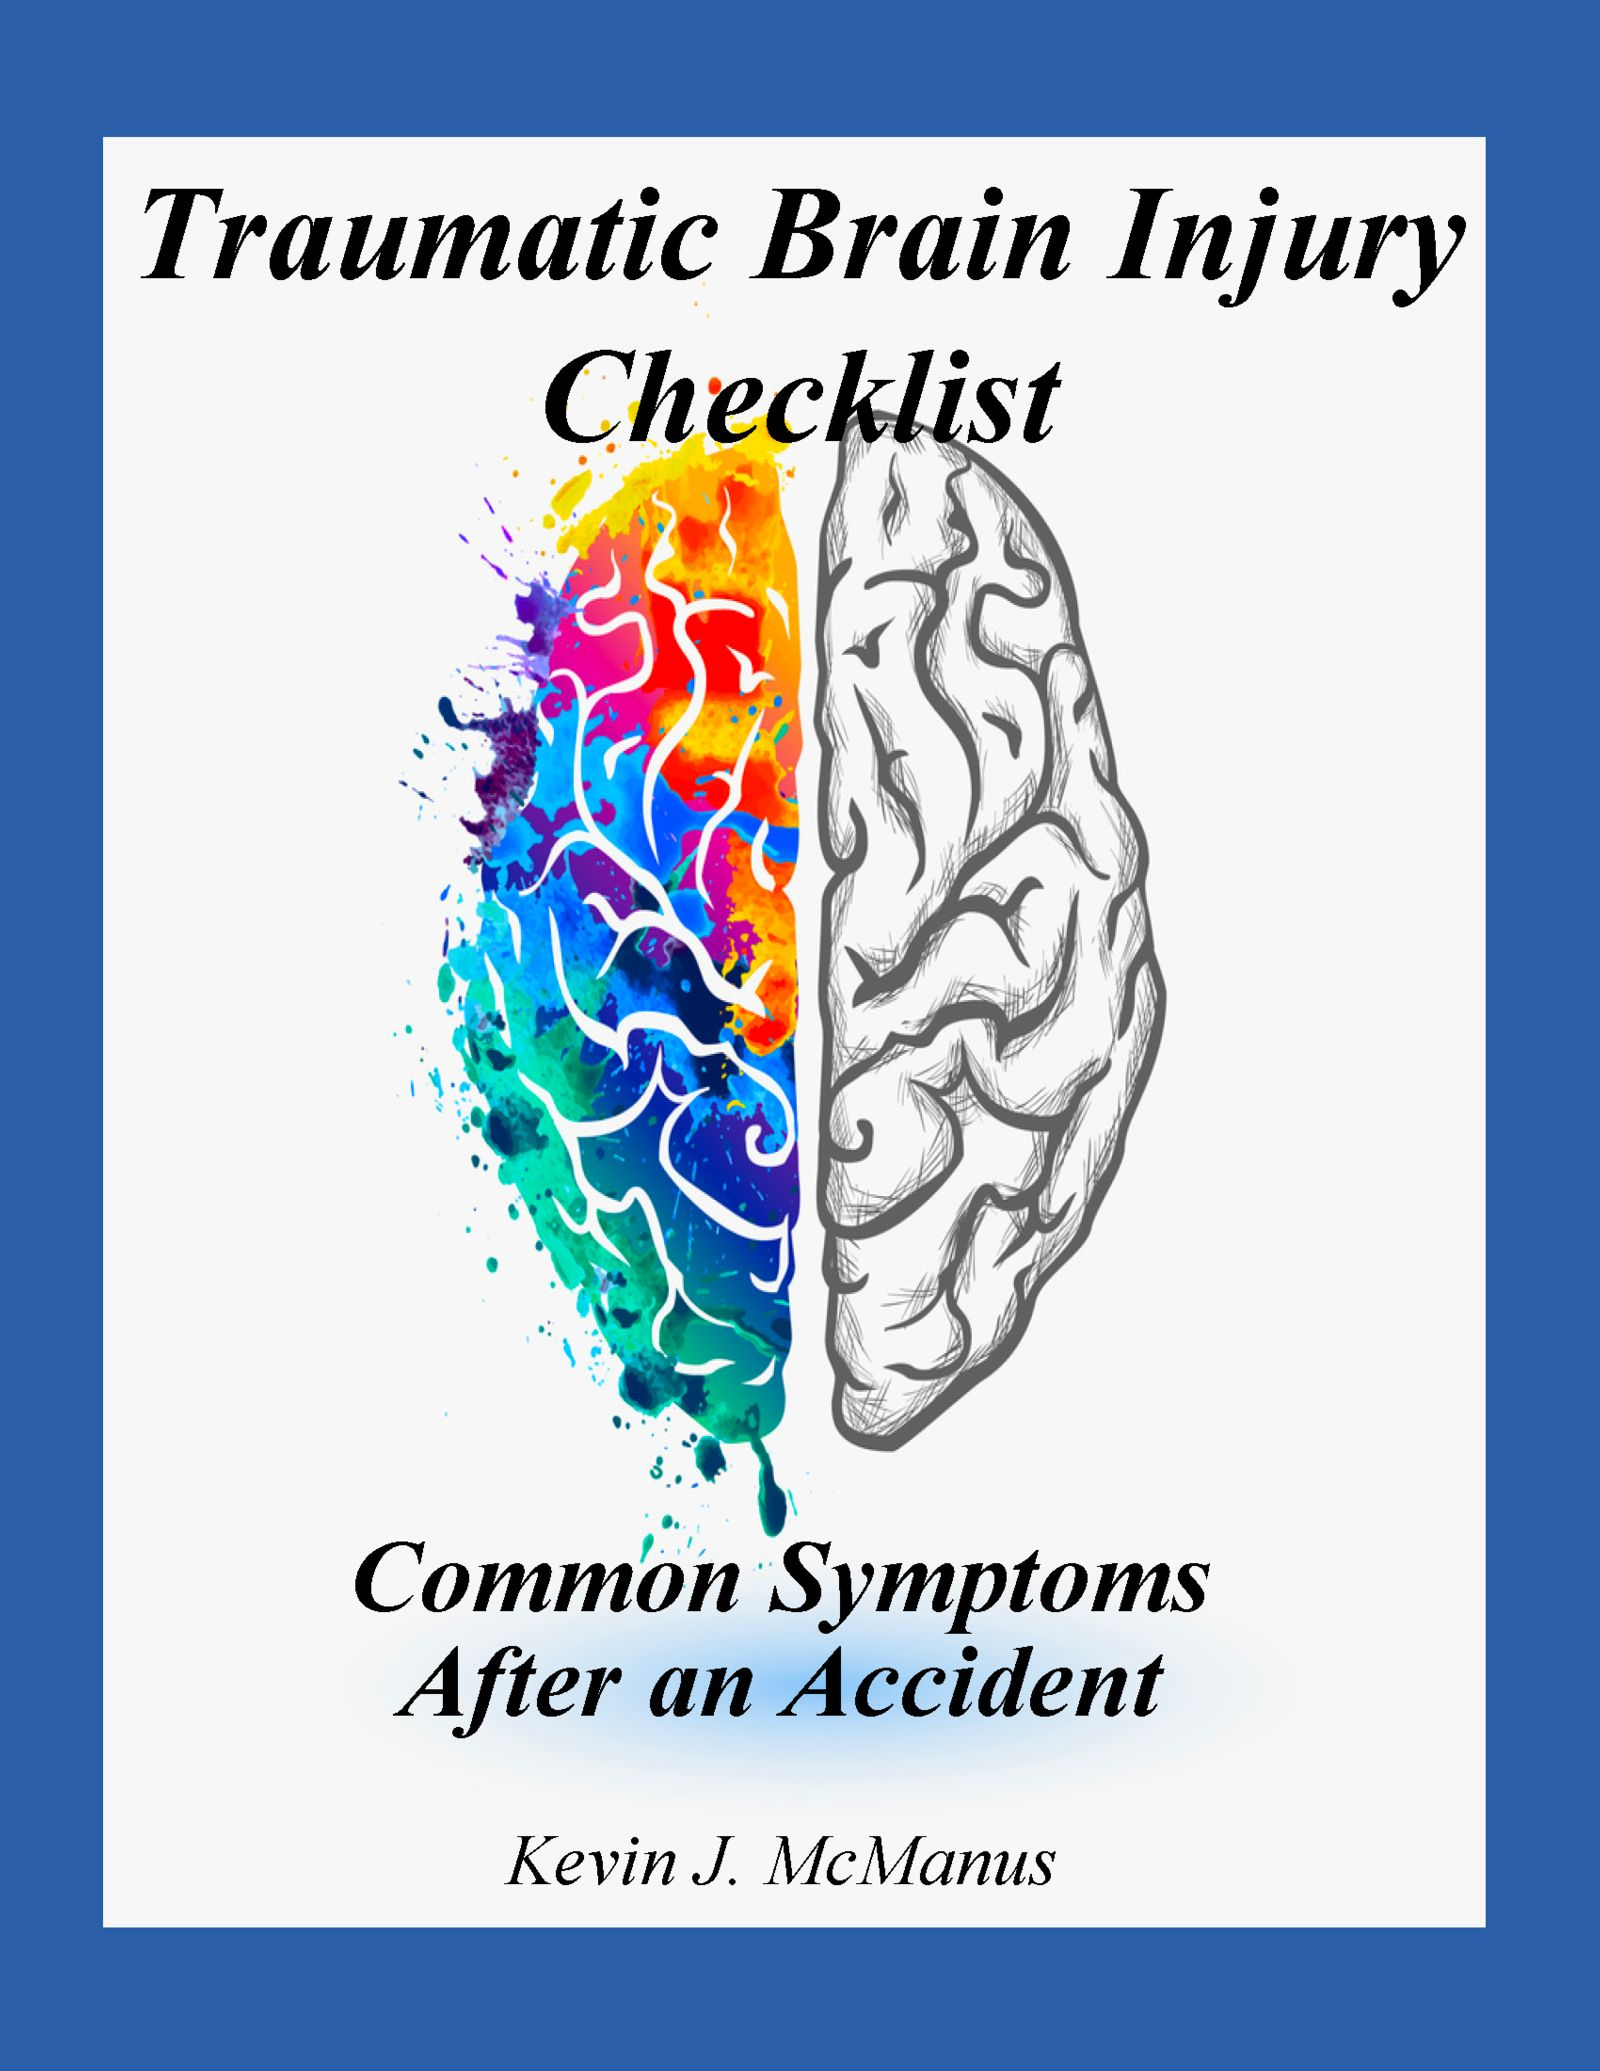 TBI checklist of brain injury symptoms by a brain injury attorney in Kansas City, MO